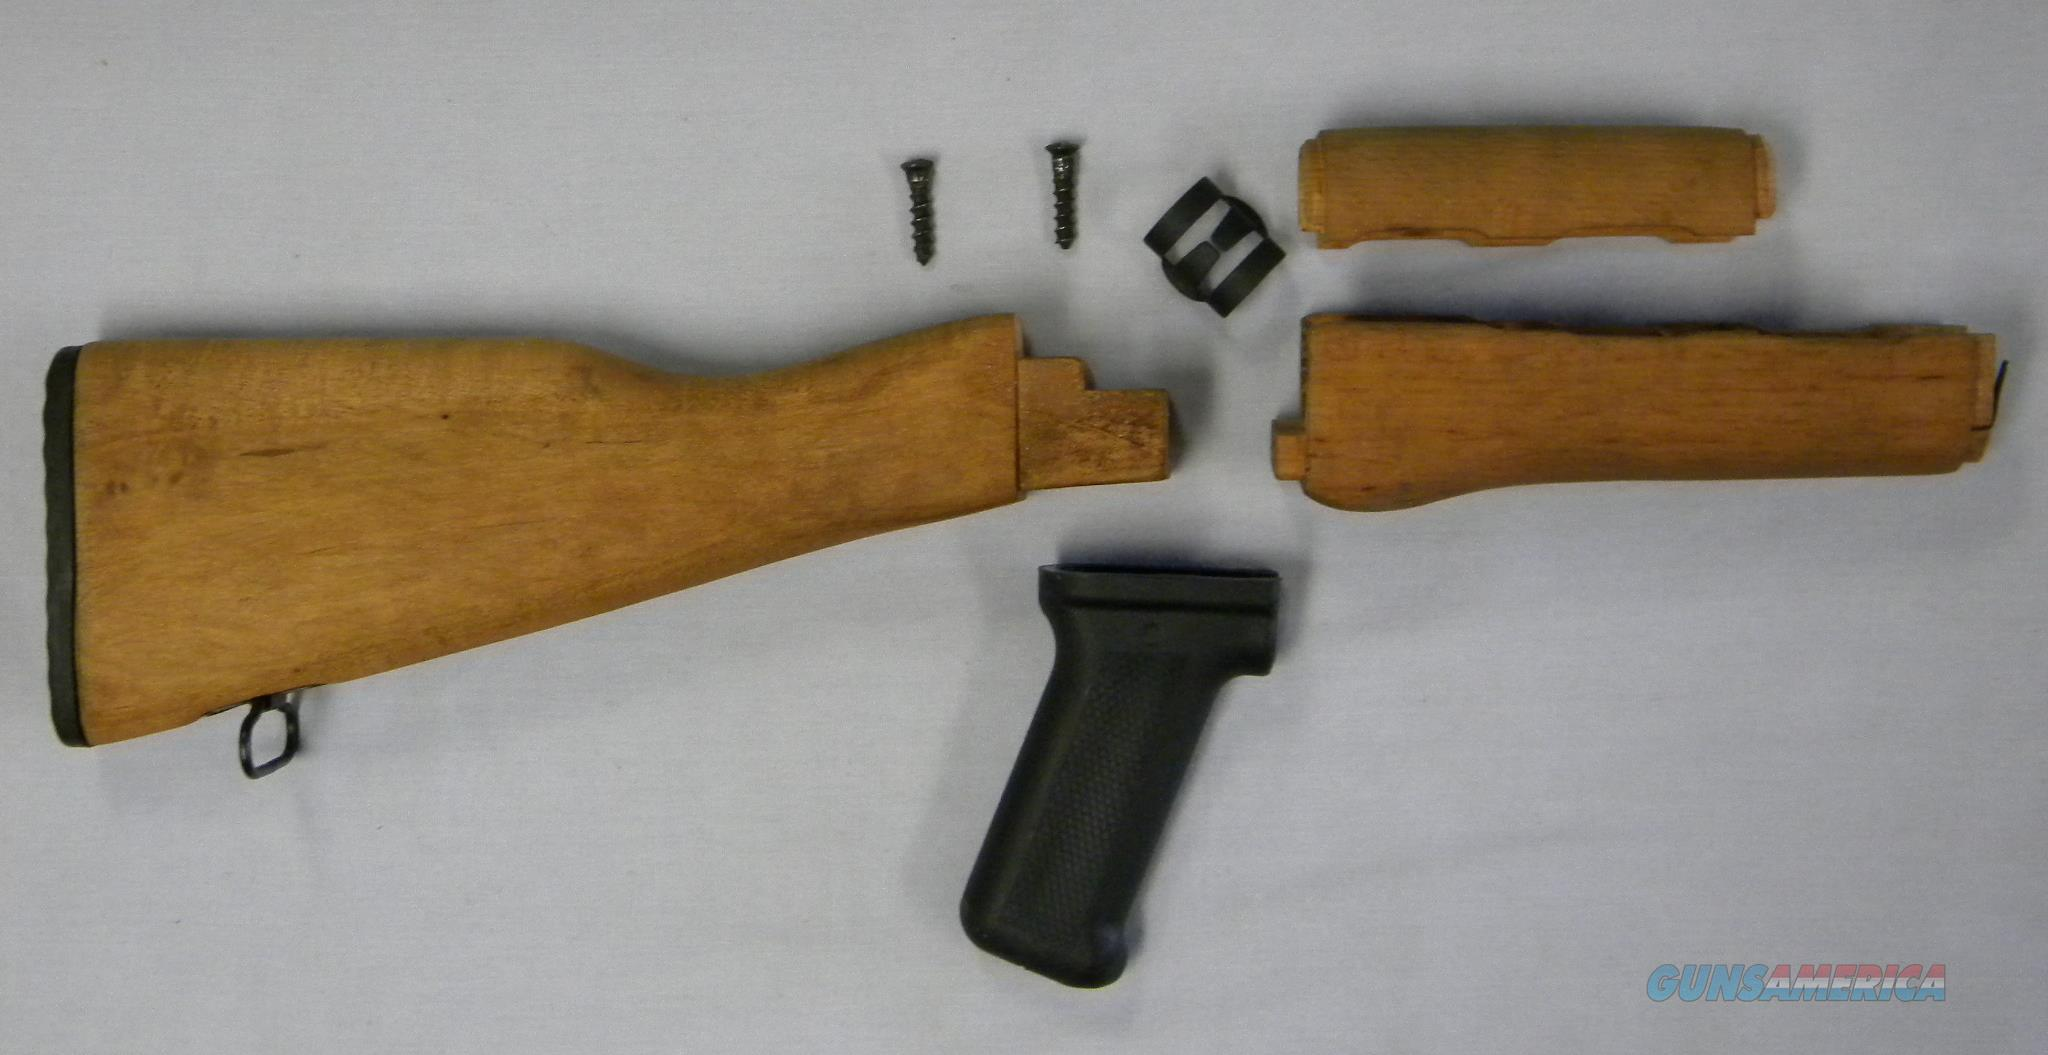 Romanian AK Stock Sets, Solid Wood, Sanded/Oiled, ''Military New'', Free Shipping!  Non-Guns > Gunstocks, Grips & Wood